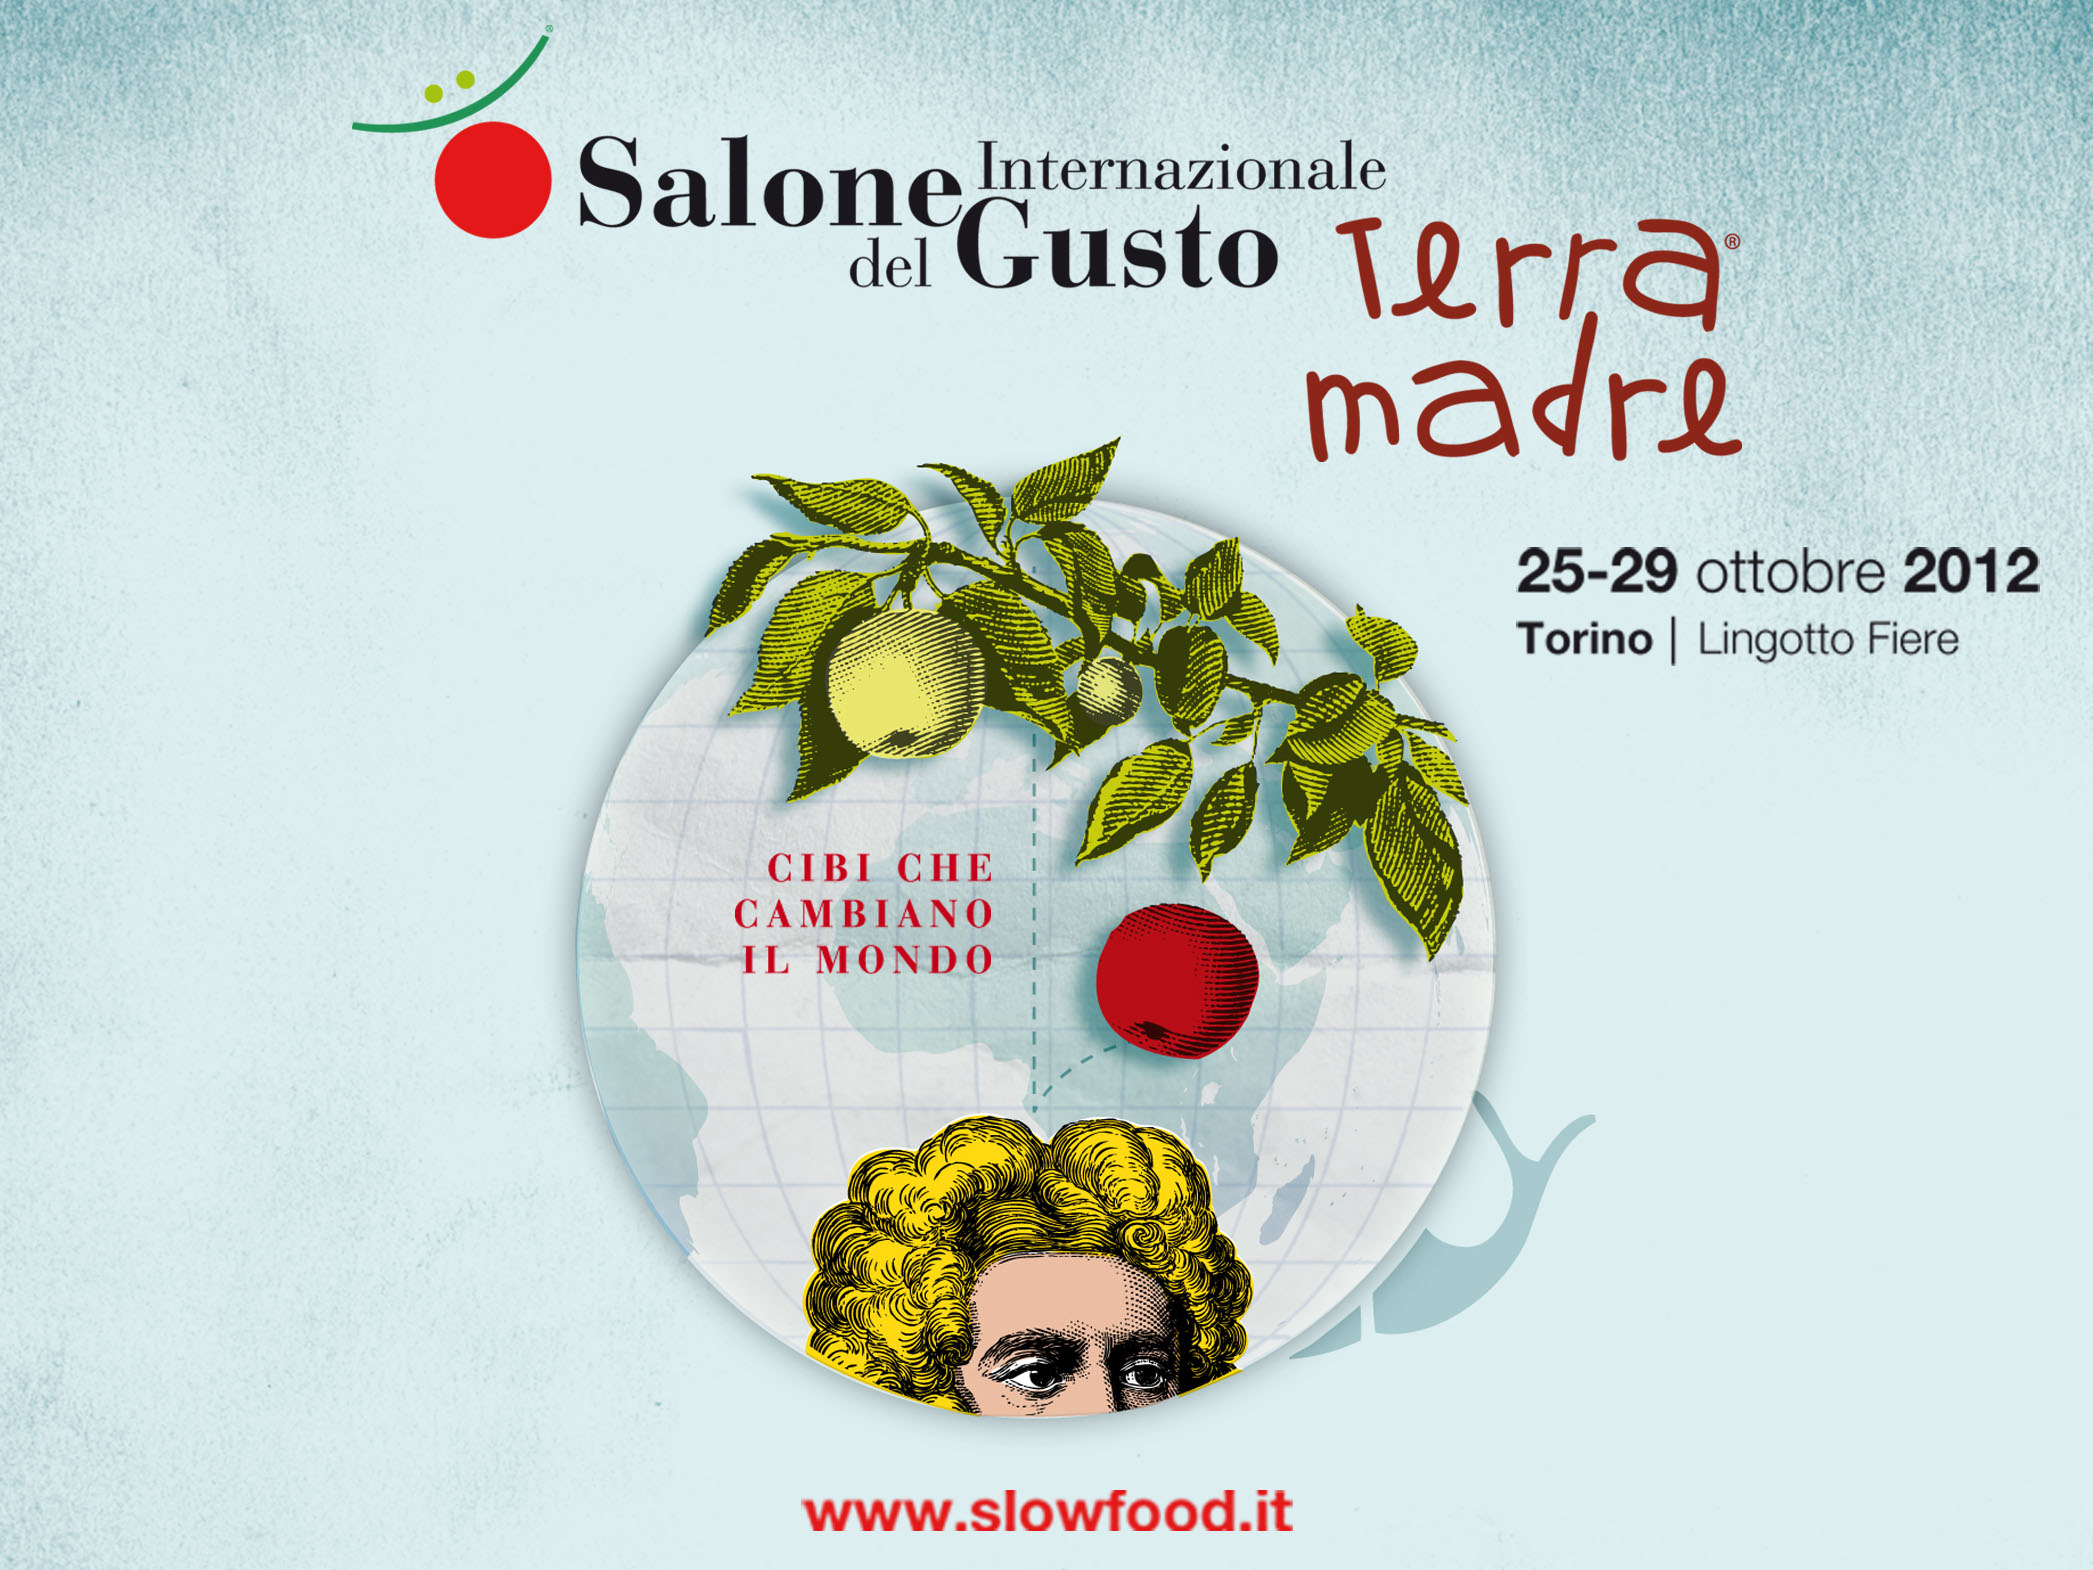 The whimsical logo of Salone del Gusto 2012